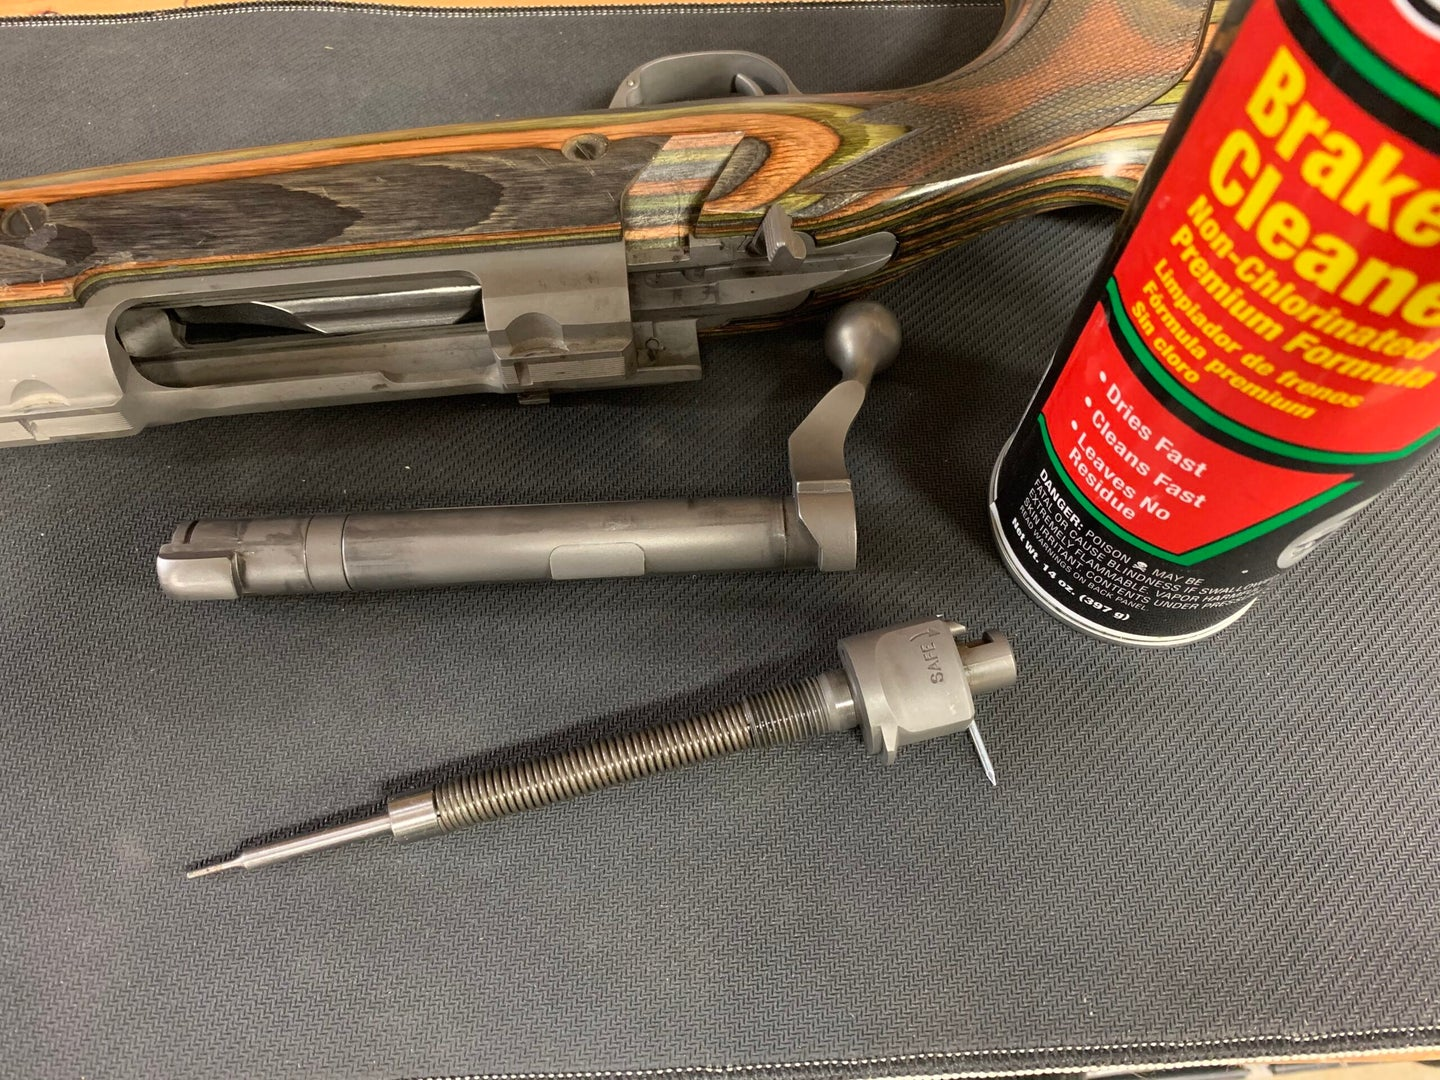 Wipe down your bolt and spray it with brake cleaner to ensure it runs properly in the cold.